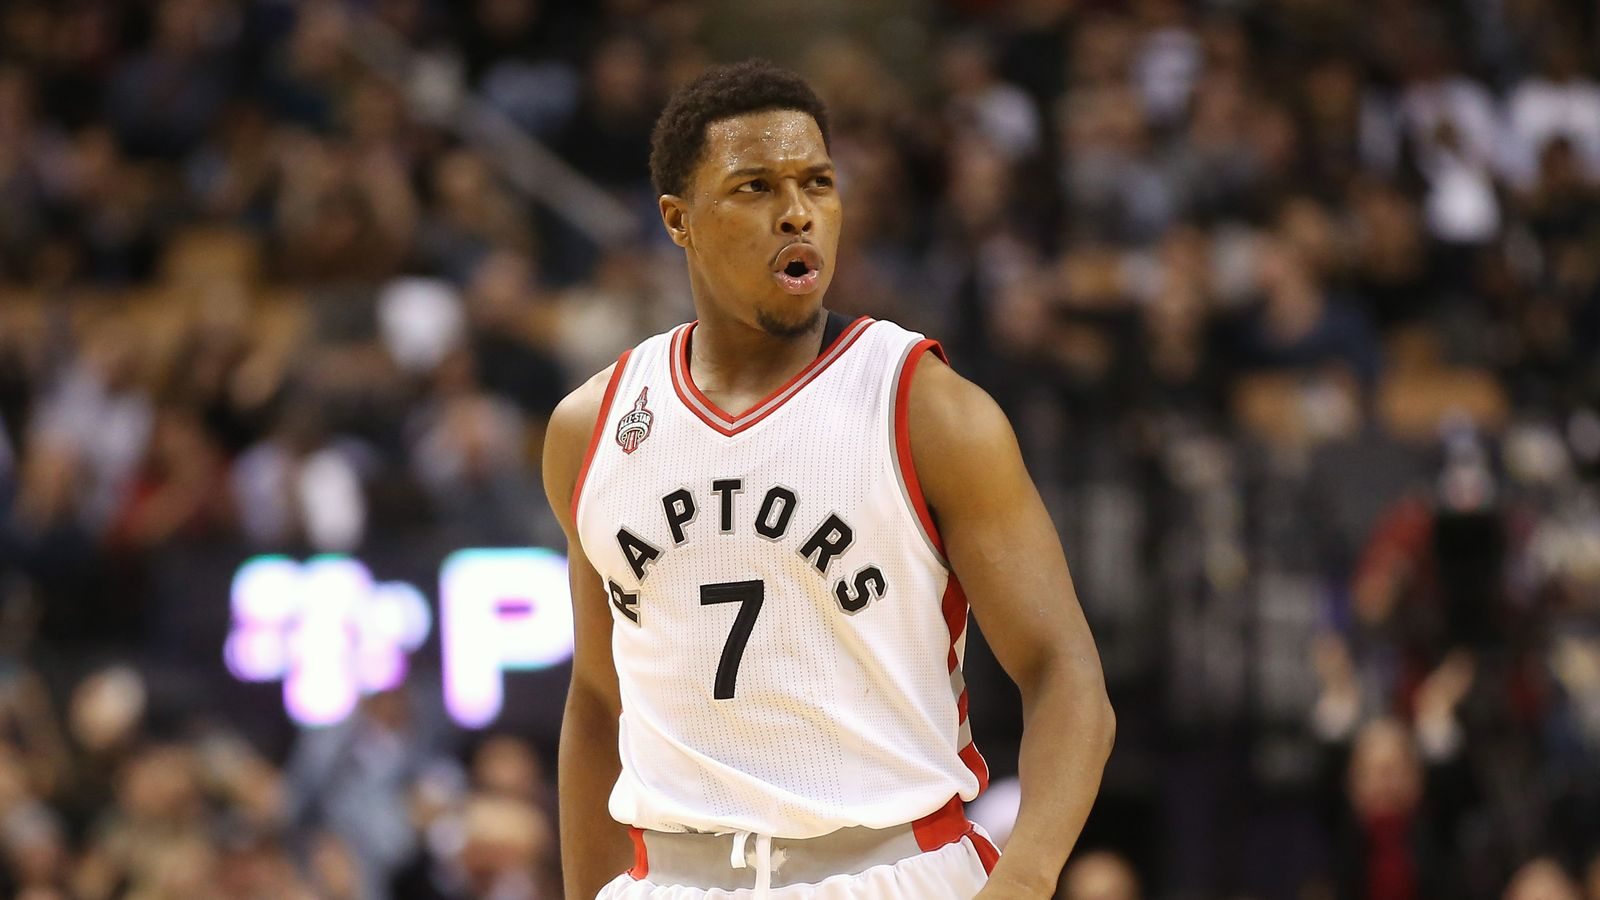 kyle lowry computer wallpaper 63849